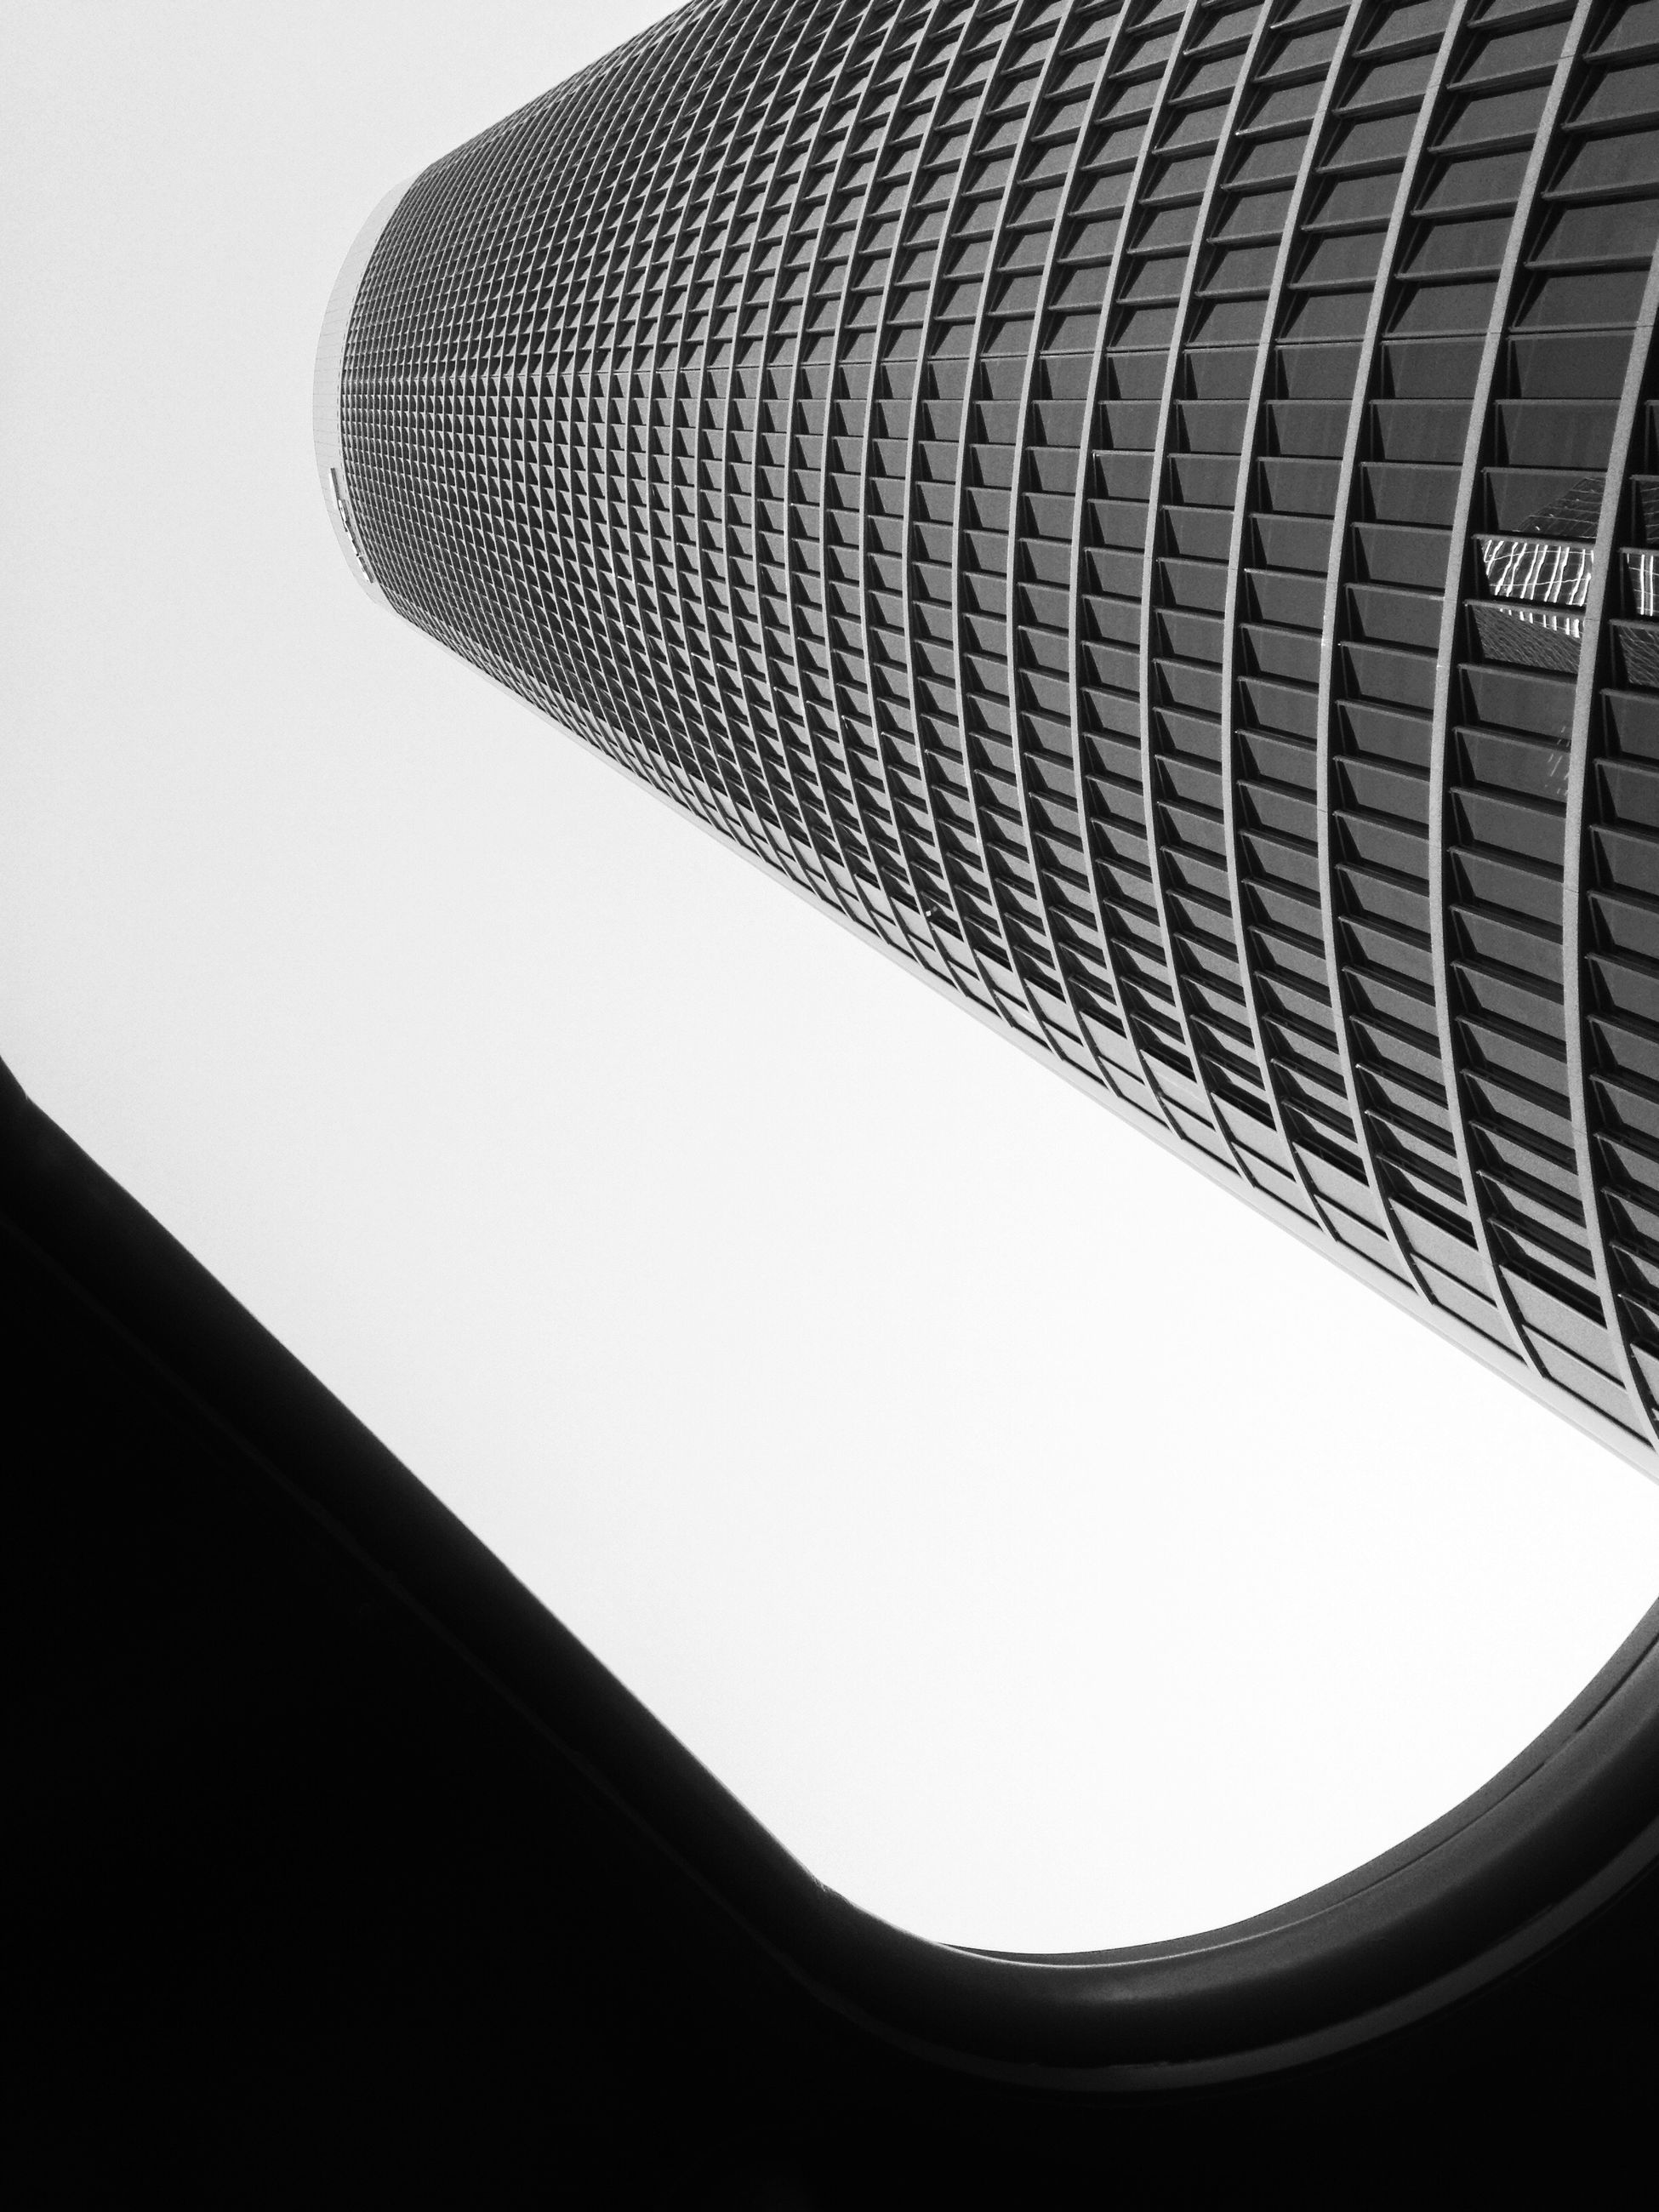 architecture, built structure, low angle view, building exterior, modern, building, clear sky, city, office building, tower, tall - high, directly below, skyscraper, architectural feature, no people, pattern, copy space, sky, day, outdoors